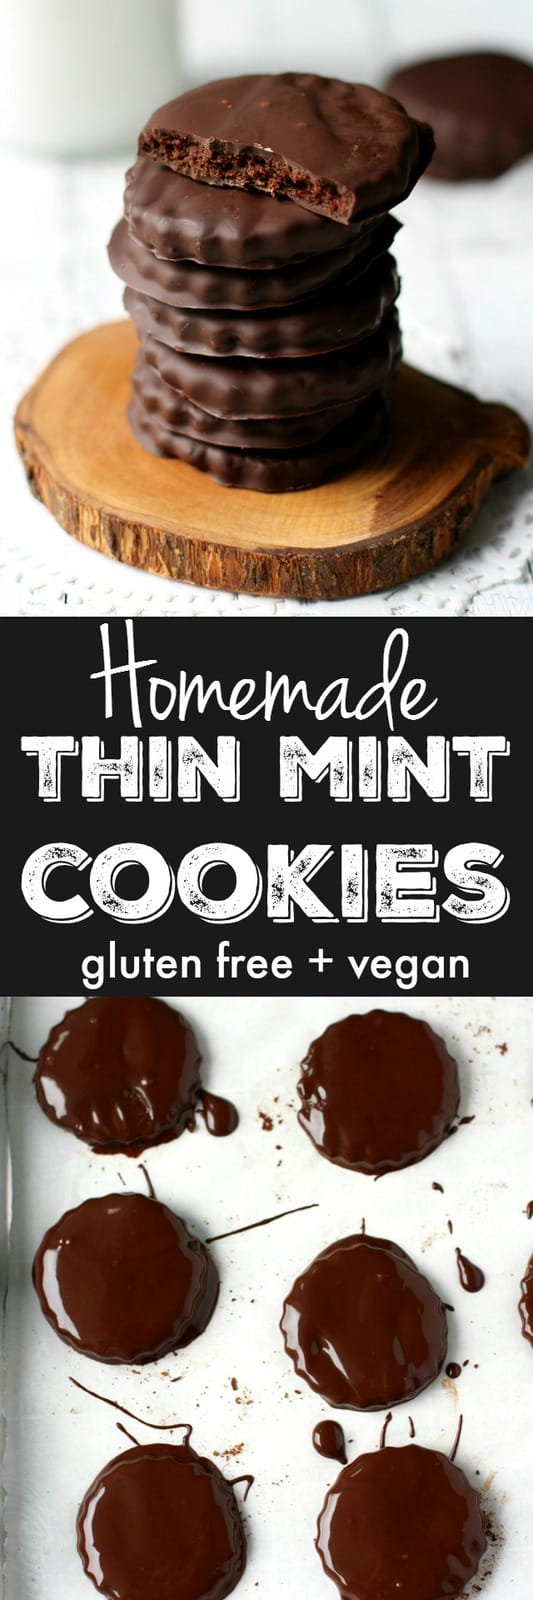 You can indulge in your favorite Girl Scout Cookies! Dark chocolate and mint combine to make these homemade thin mints extra delicious!